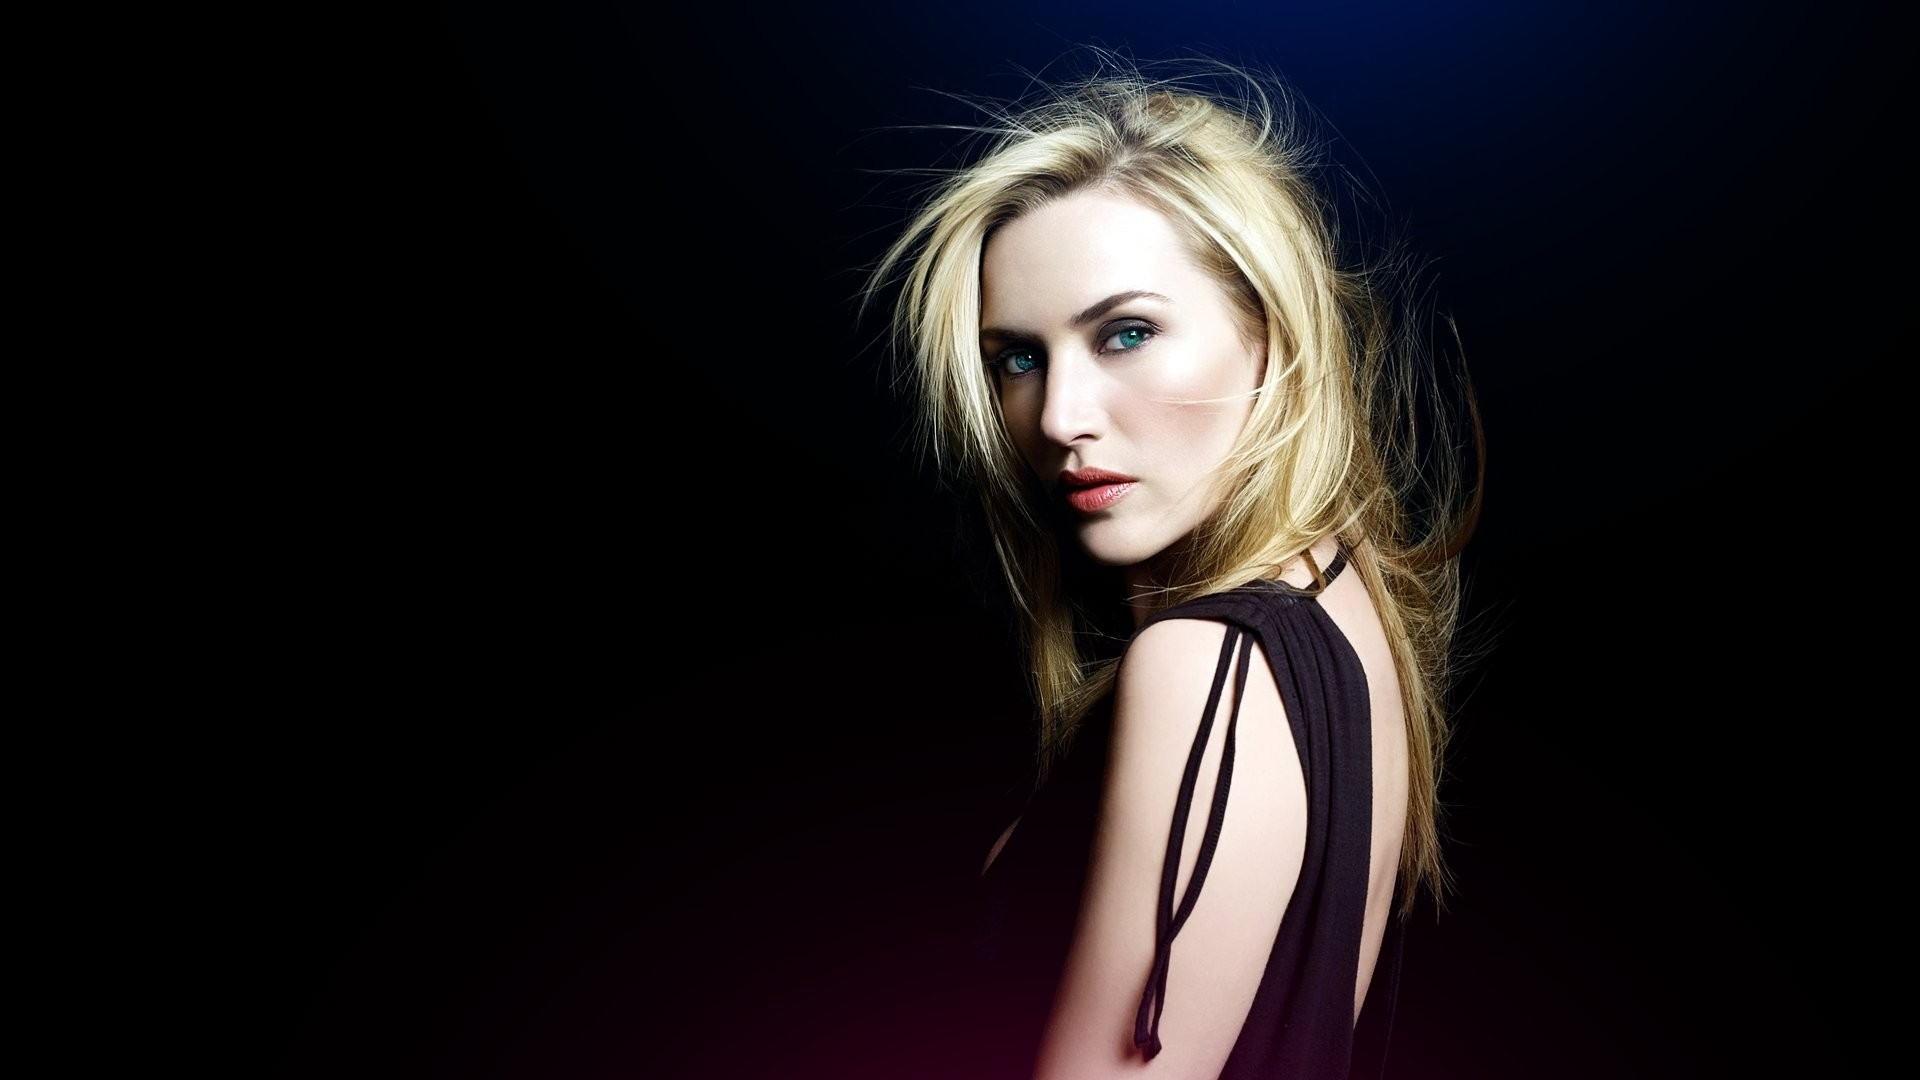 1920x1080 - Kate Winslet Wallpapers 12